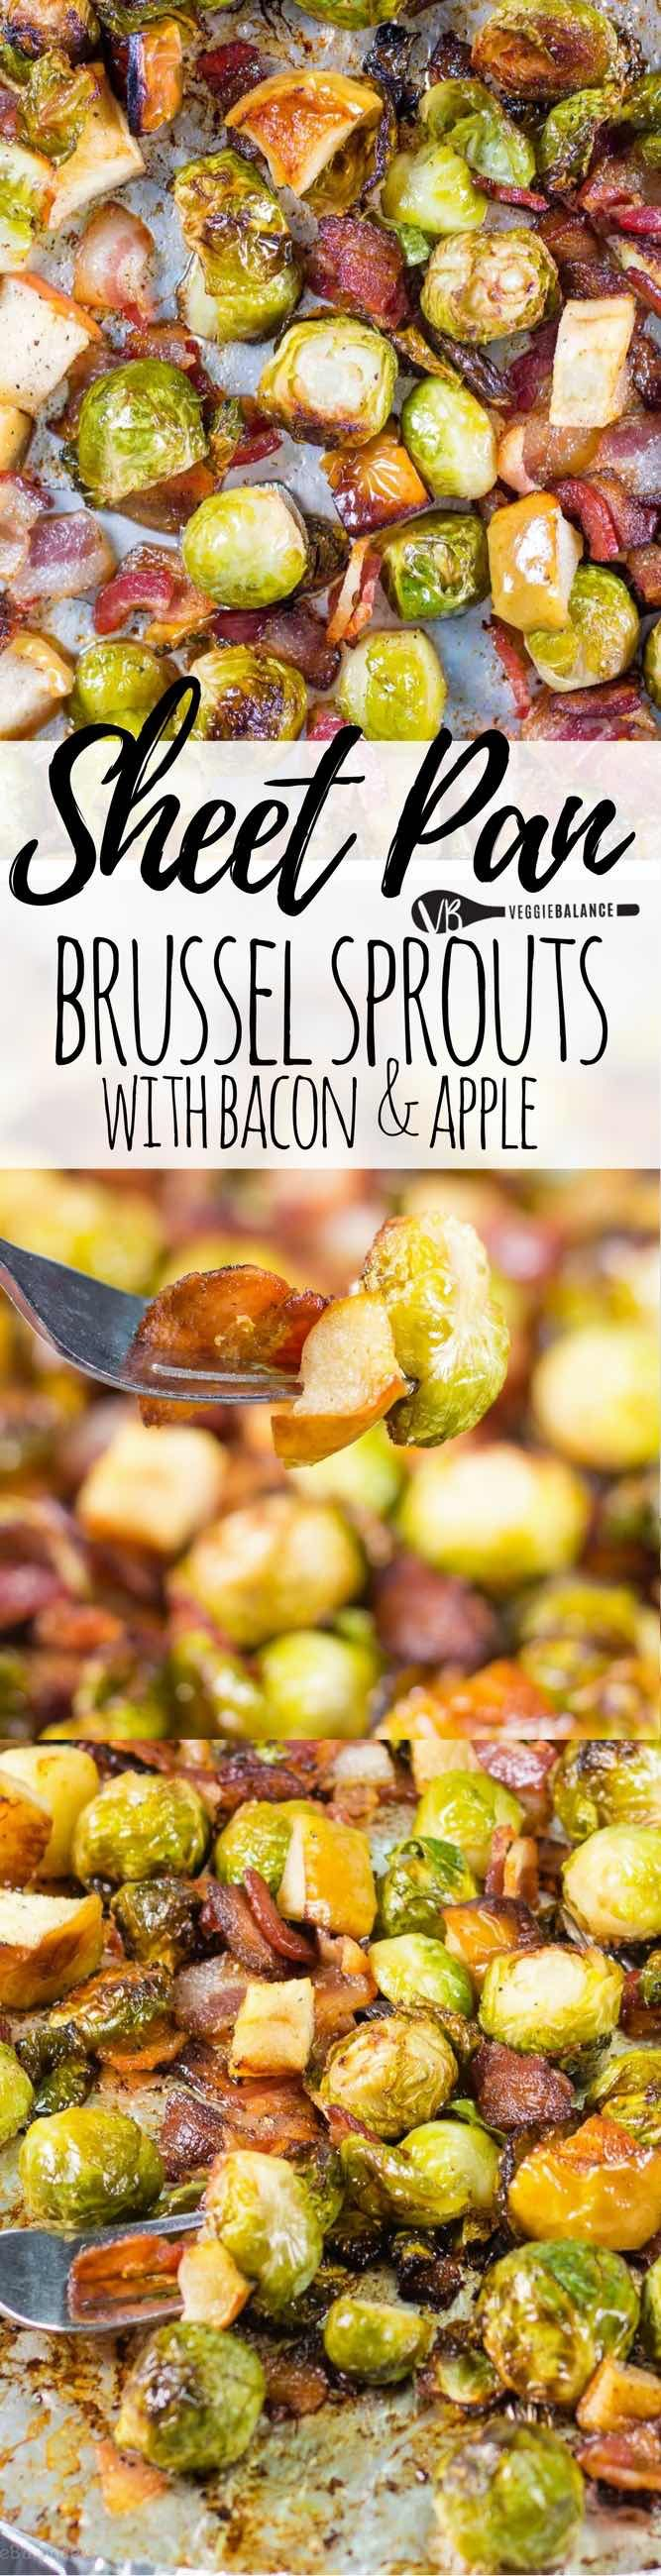 Roasted Brussel Sprouts with Bacon, Apples - Veggie Balance